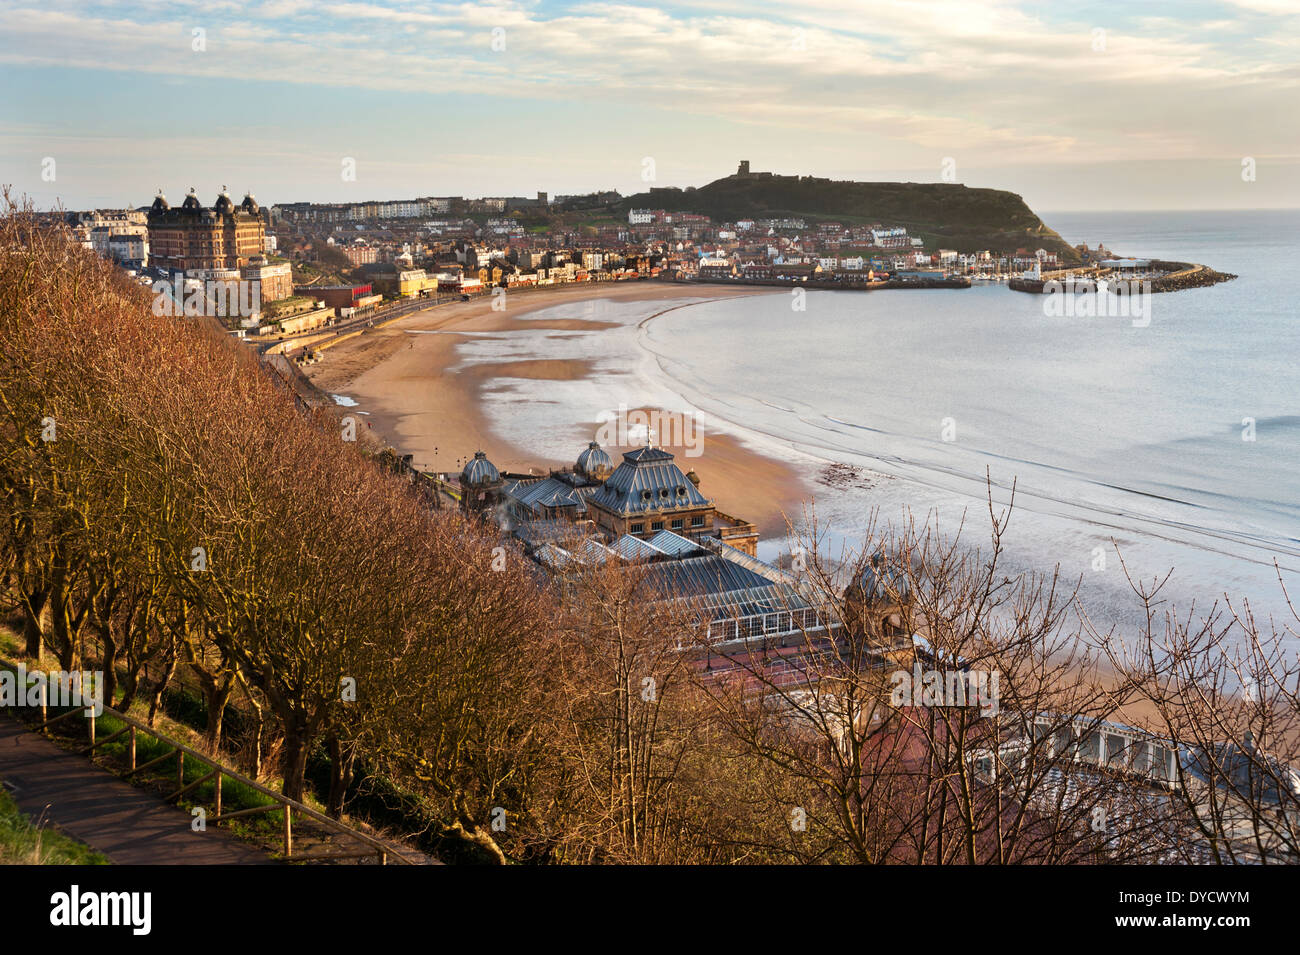 Early morning in Spring over North Bay, showing The Grand Hotel, Spa complex and the Castle, Scarborough, North Yorkshire, UK - Stock Image